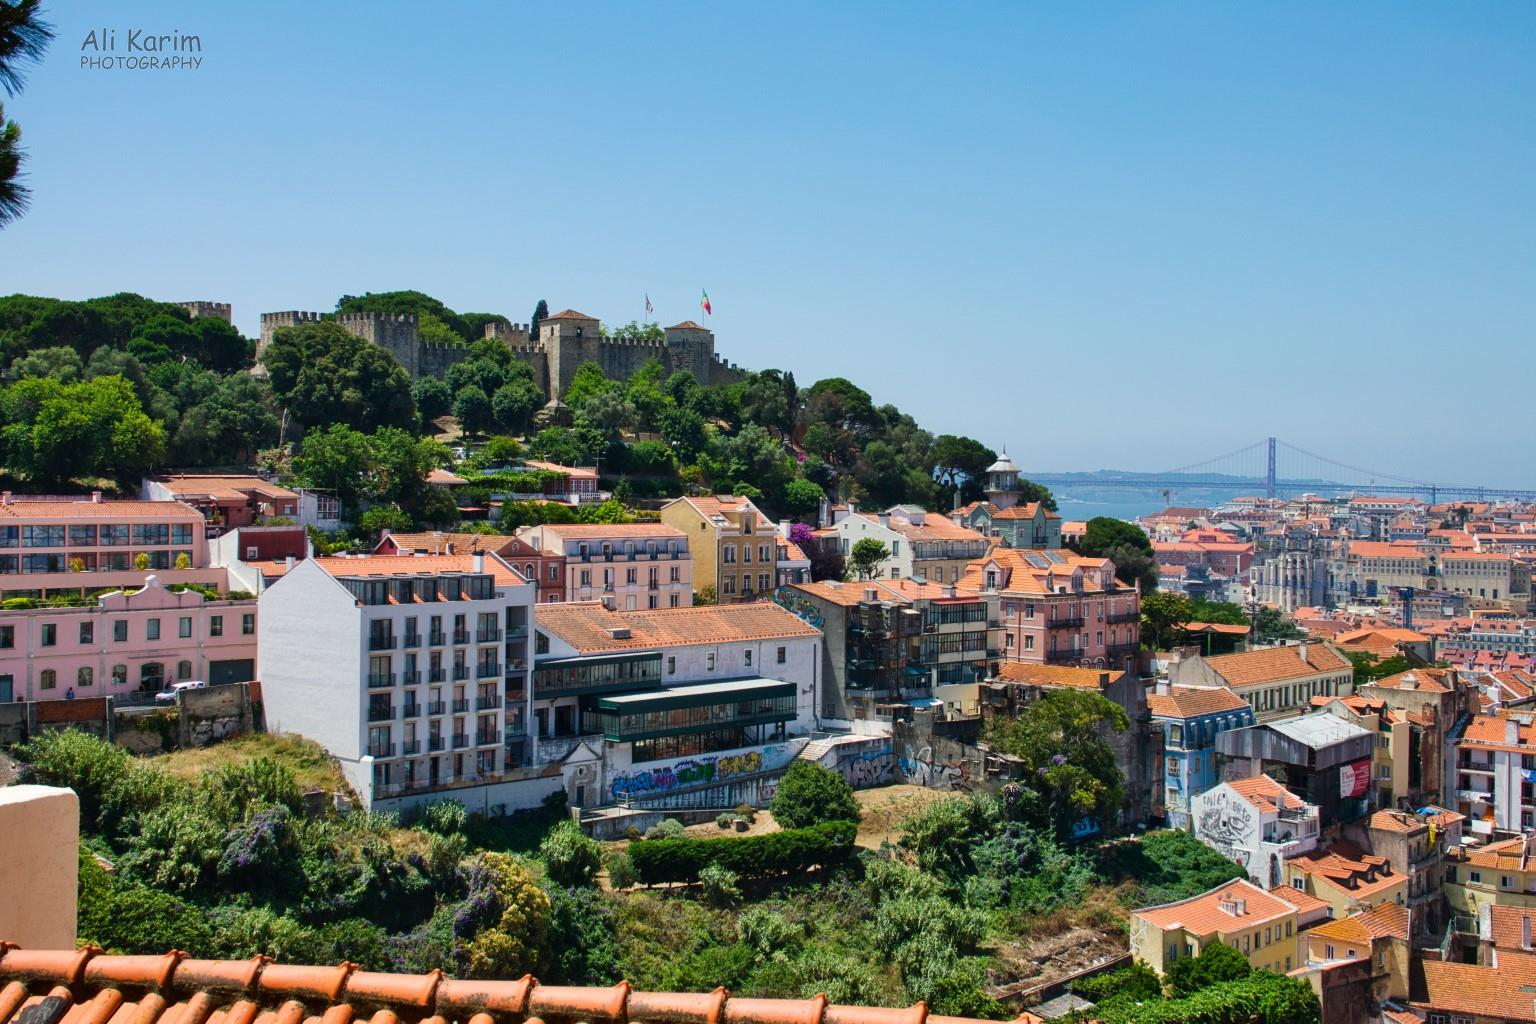 Lisbon Portugal: Beautiful view of the Moors Castle (Castelo de São Jorge) and the river Tagus from Miradouro de Santa Luzia